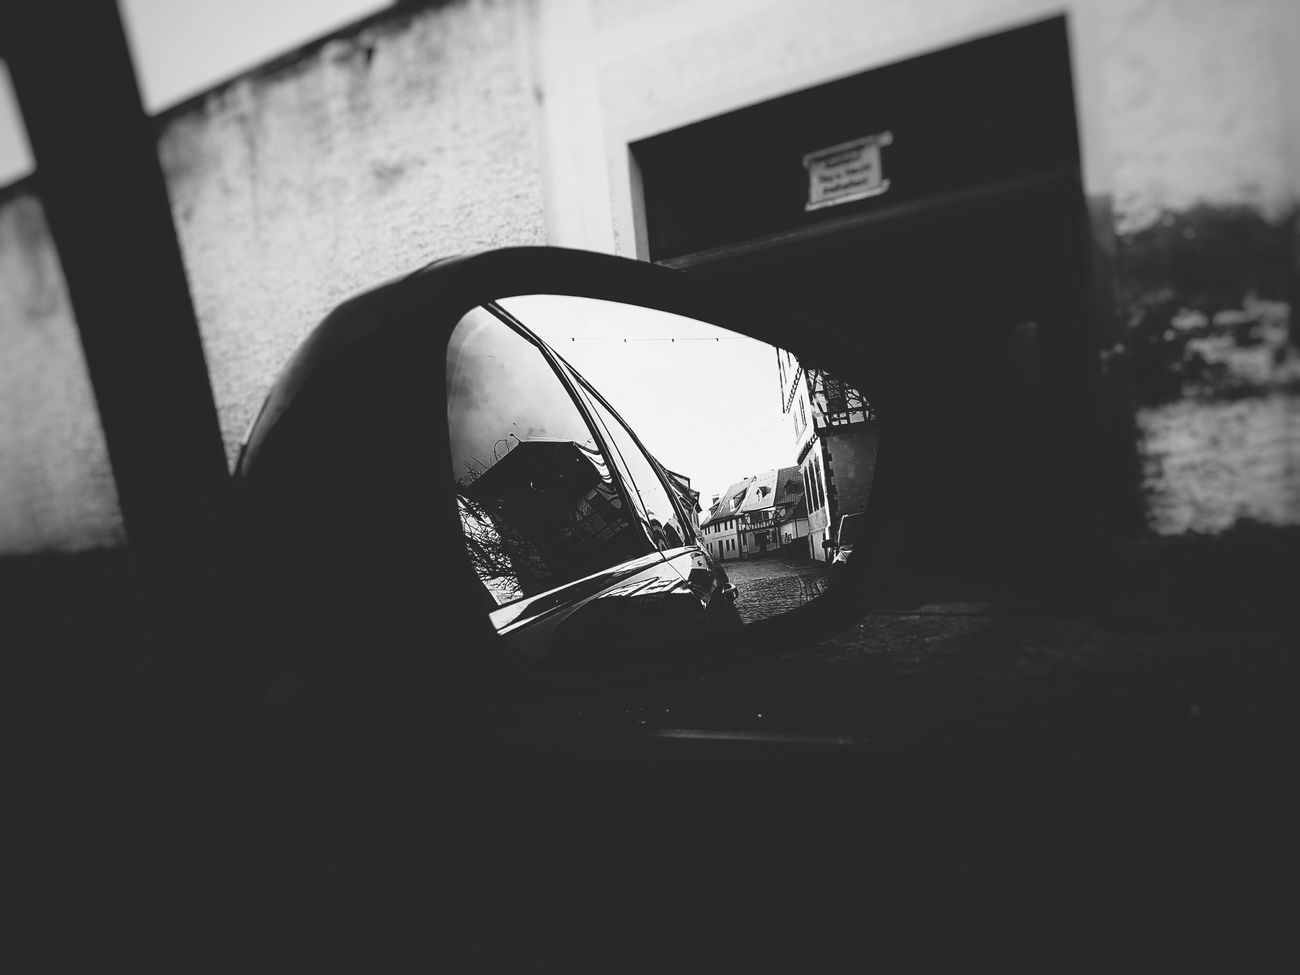 Silhouette No People Day Close-up Outdoors Black And White Collection  Black And White Photography Blackandwhite Black&white Part Of Part Of Car Mirror Look Back Car Buildings